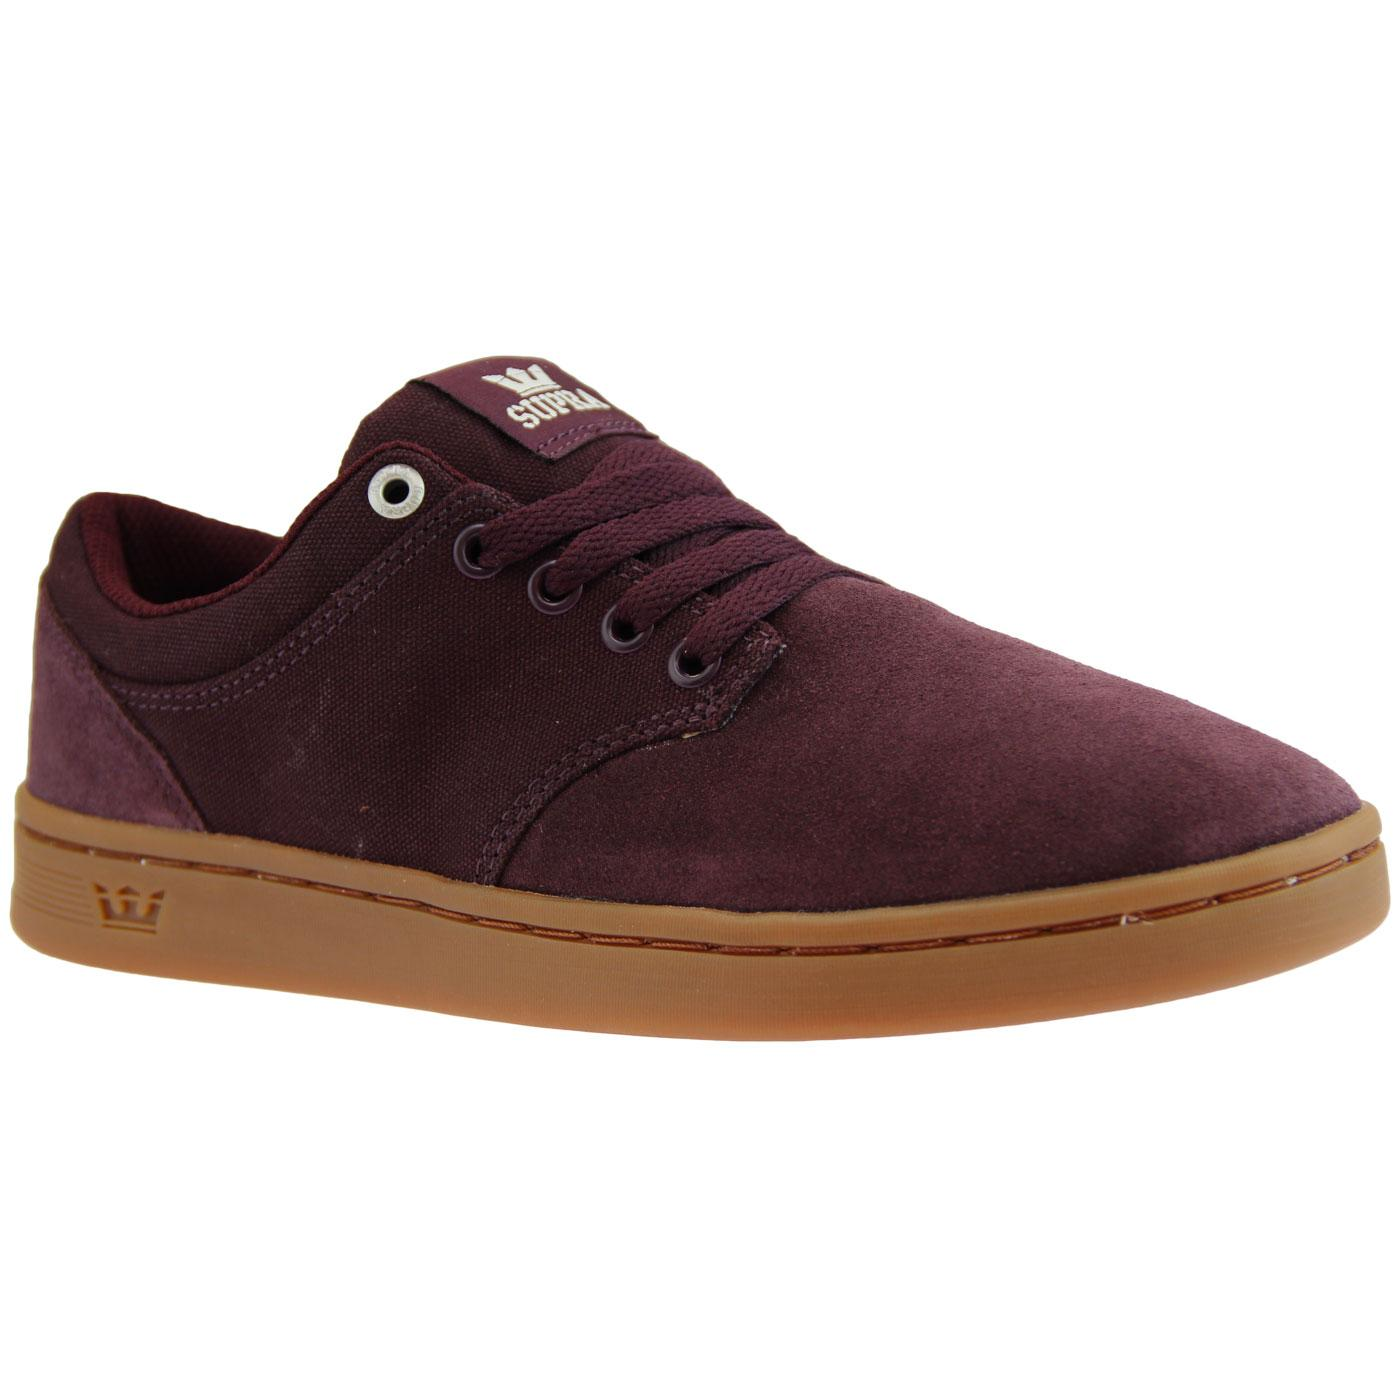 Chino Court SUPRA Retro Low Top Skate Trainers W/G